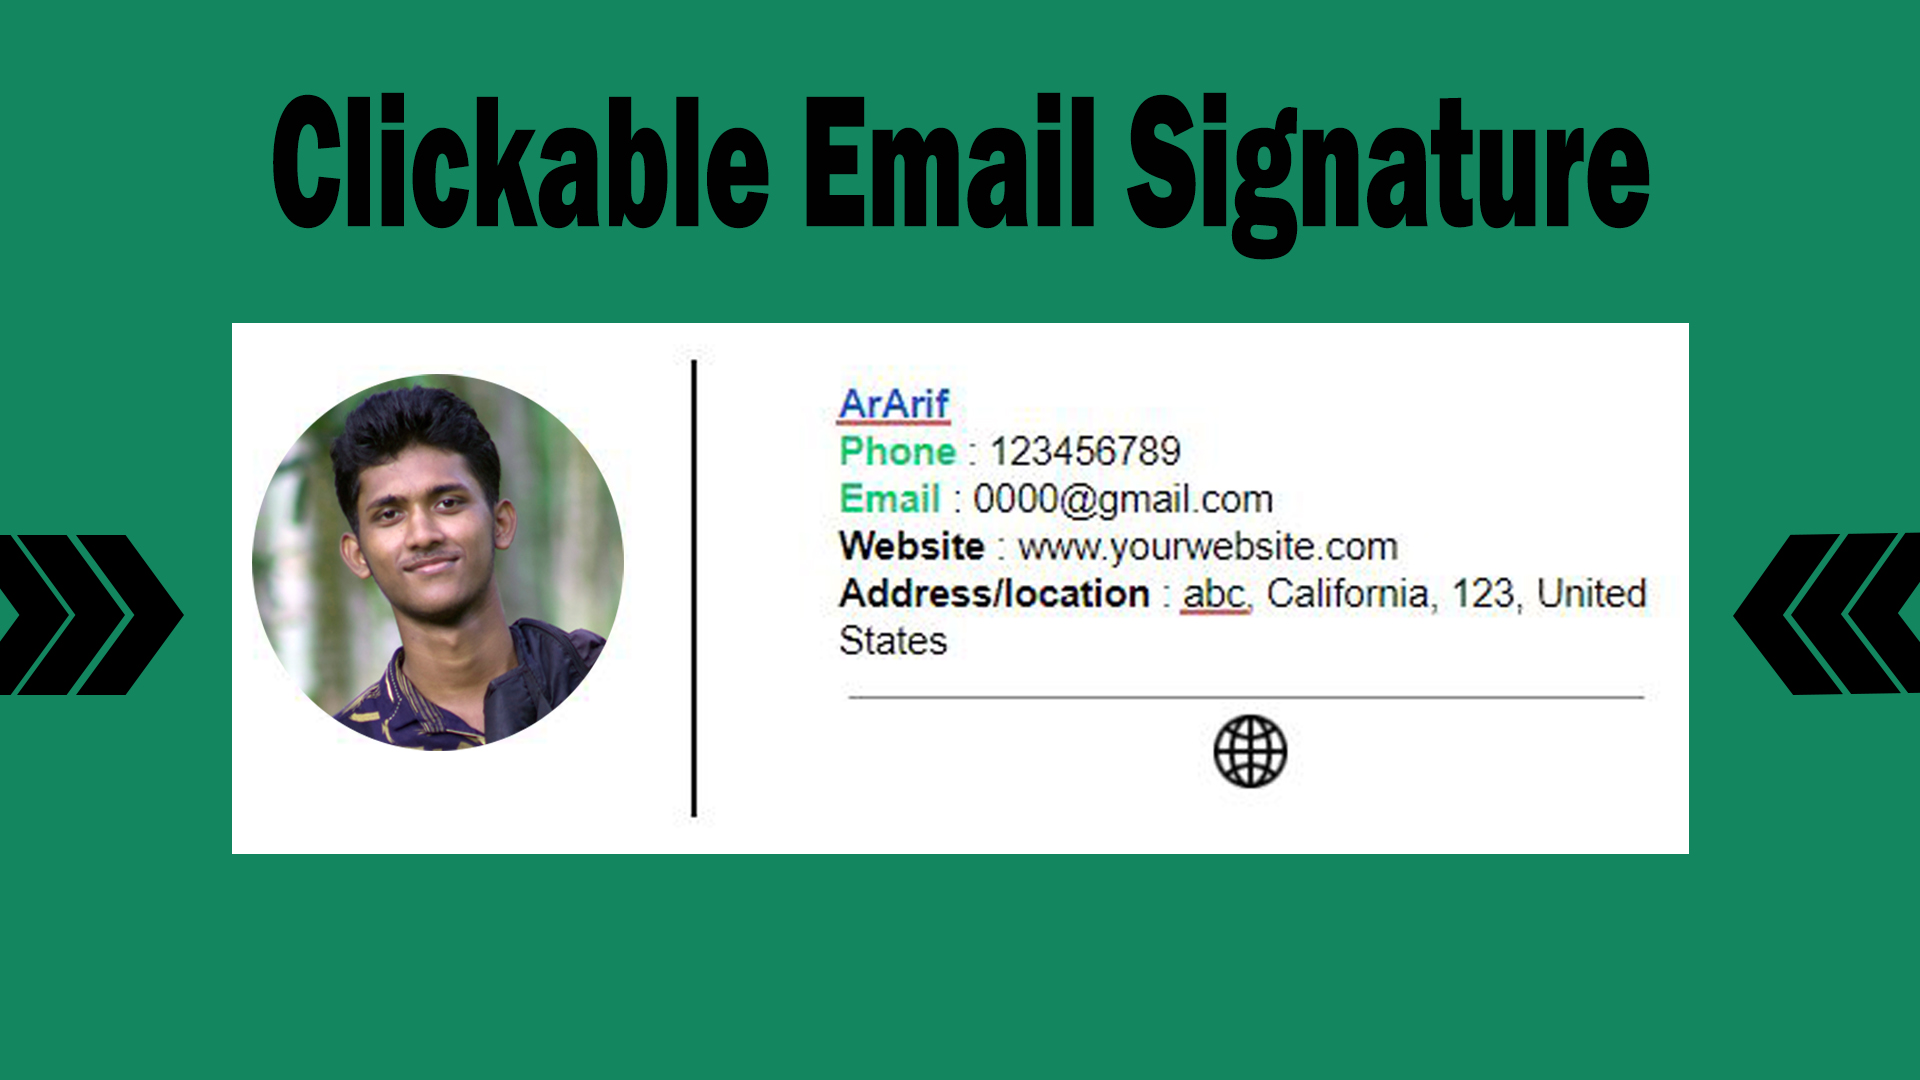 I will make clickable email signature